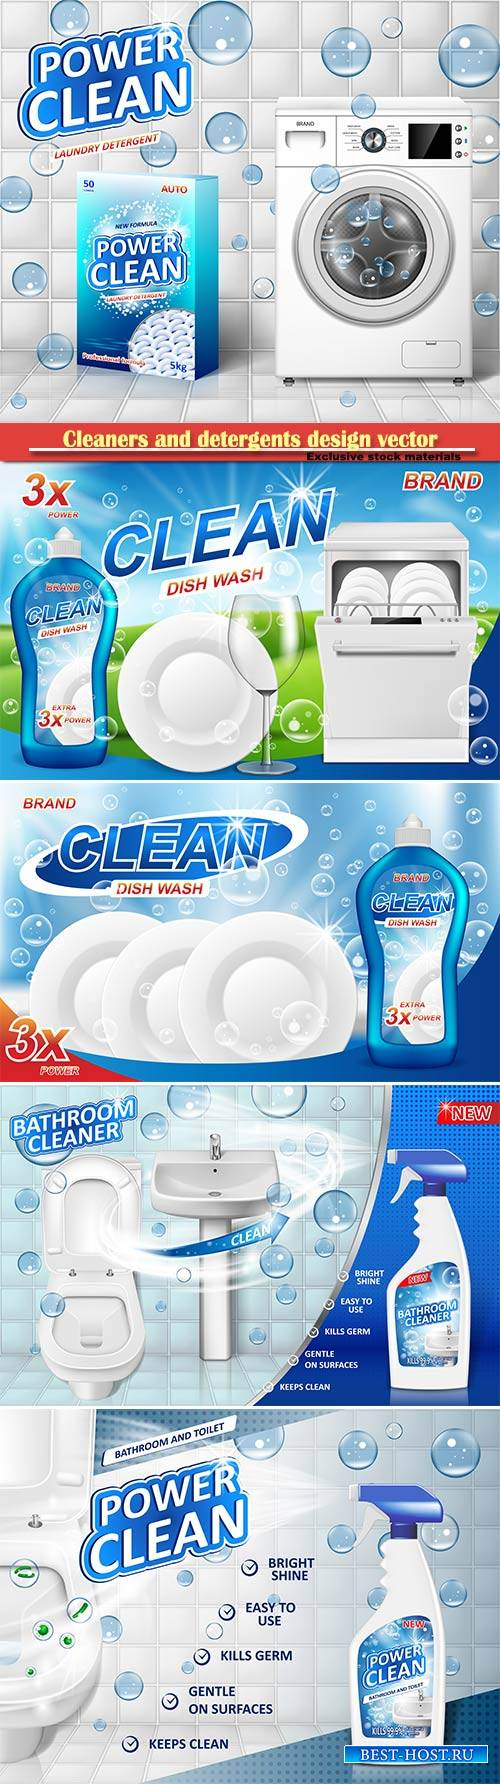 Cleaners and detergents design vector template